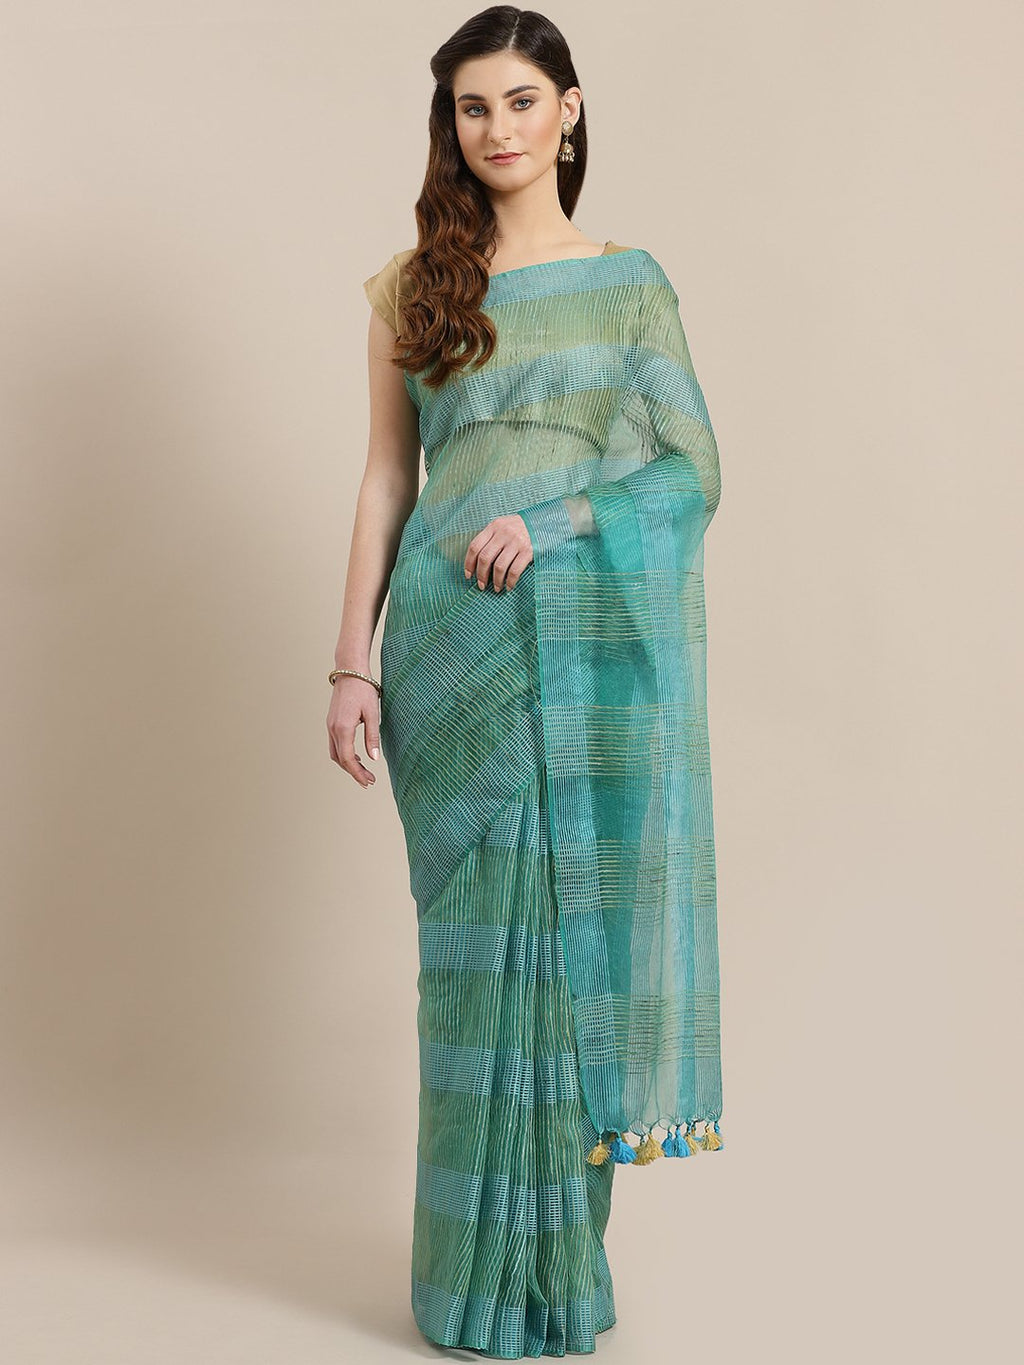 Blue Green Zari Handwoven Checked Saree-Saree-Kalakari India-ALBGSA0018-Hand Crafted Sustainable Fabrics, Kota Silk, Linen, Sarees, Traditional Weave-[Linen,Ethnic,wear,Fashionista,Handloom,Handicraft,Indigo,blockprint,block,print,Cotton,Chanderi,Blue, latest,classy,party,bollywood,trendy,summer,style,traditional,formal,elegant,unique,style,hand,block,print, dabu,booti,gift,present,glamorous,affordable,collectible,Sari,Saree,printed, holi, Diwali, birthday, anniversary, sustainable, organic, sca